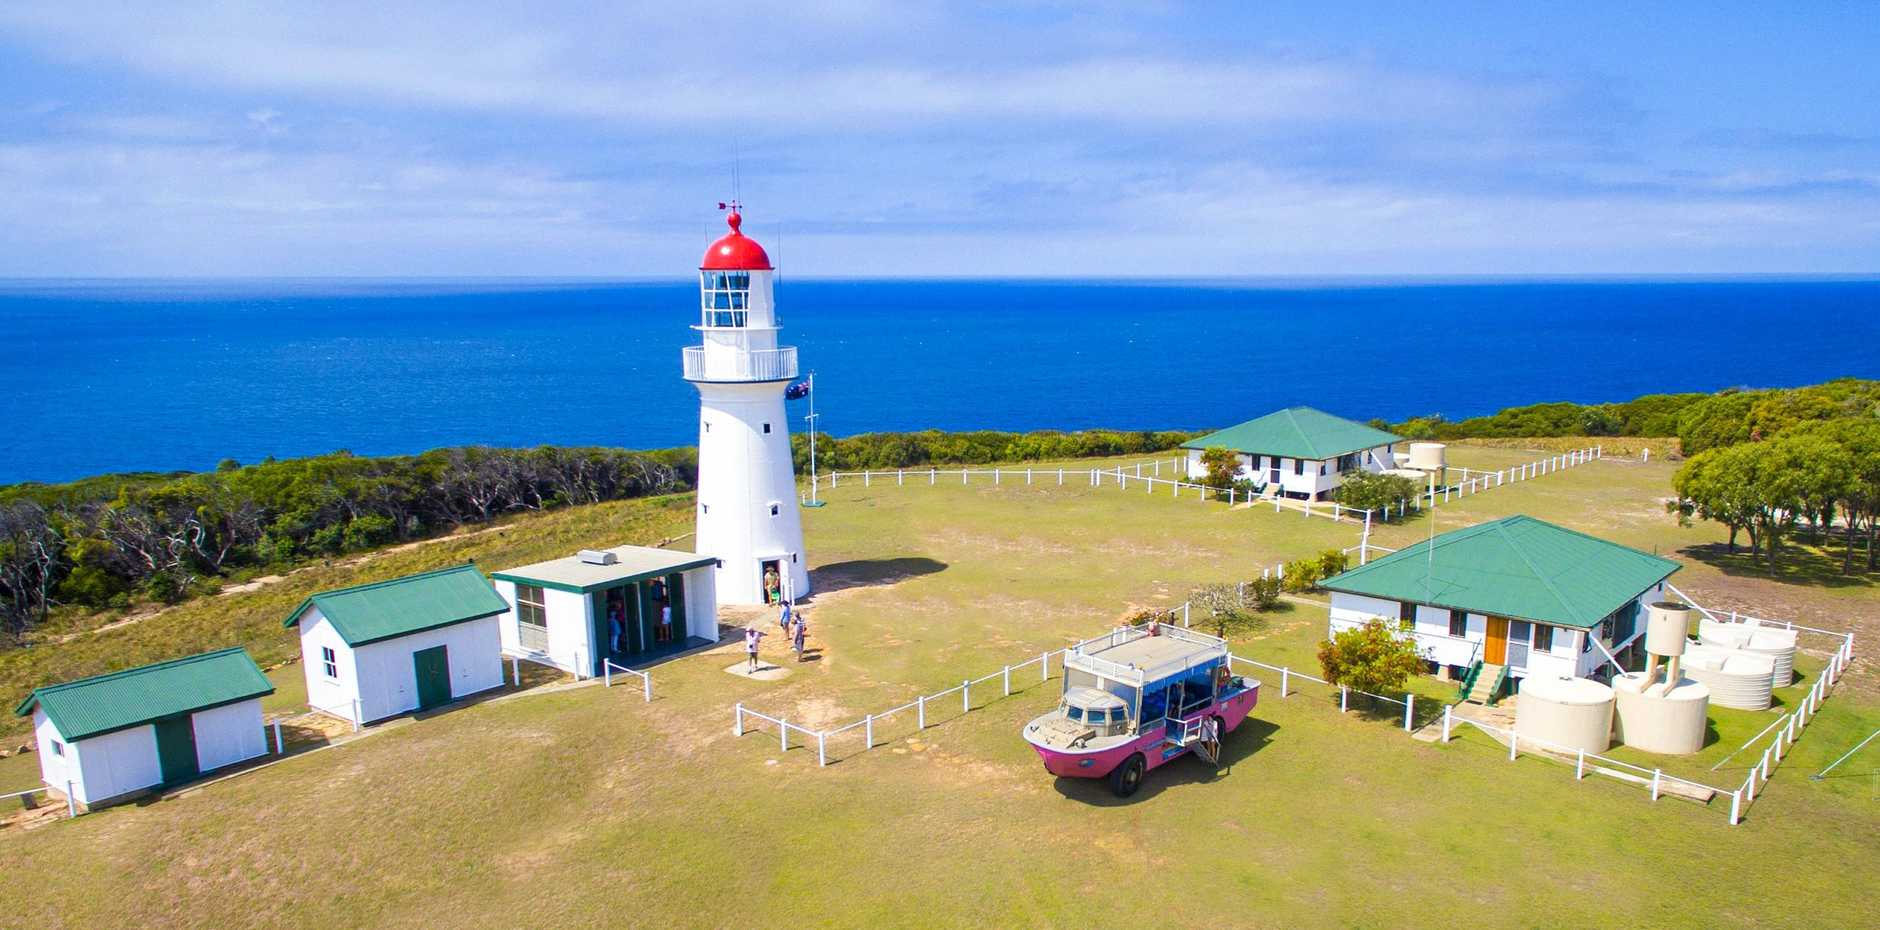 LARC TOUR: The Bustard Head Lighthouse features in a popular LARC trip called the Paradise Tour.